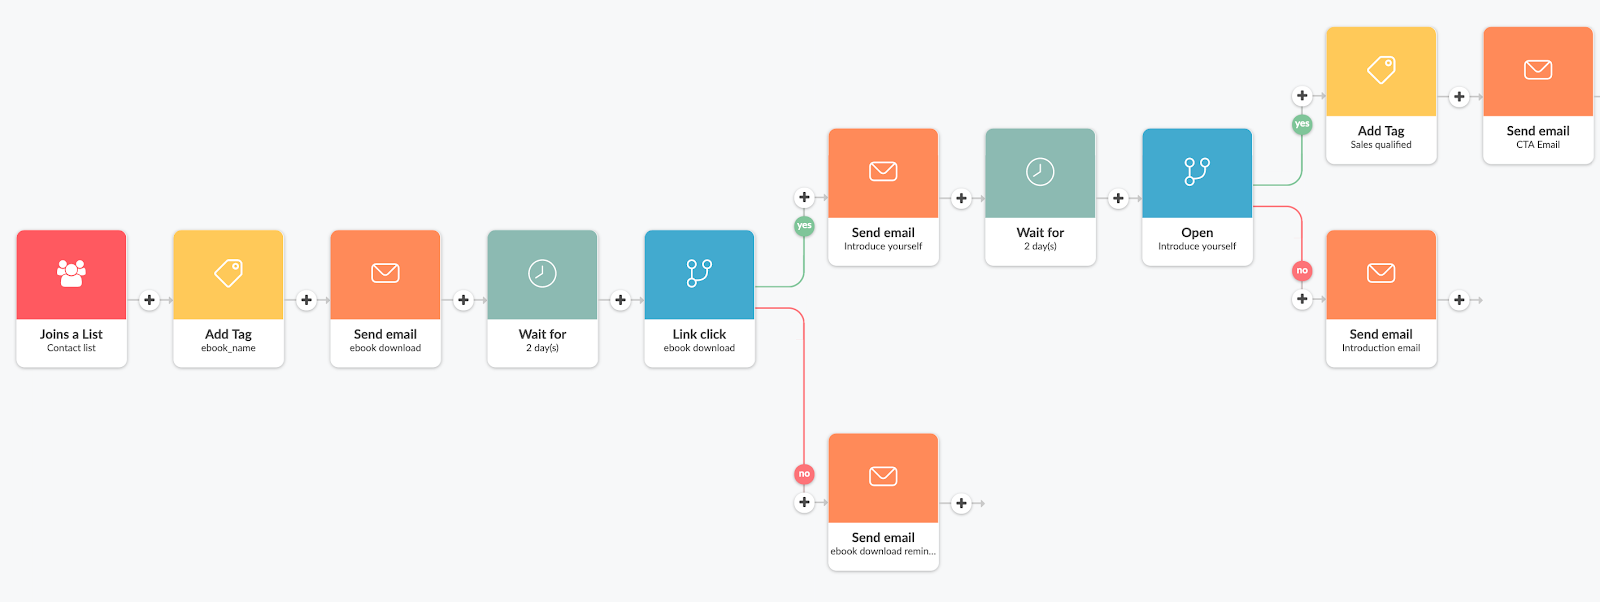 Overview of the automations you can setup for your marketing campaigns